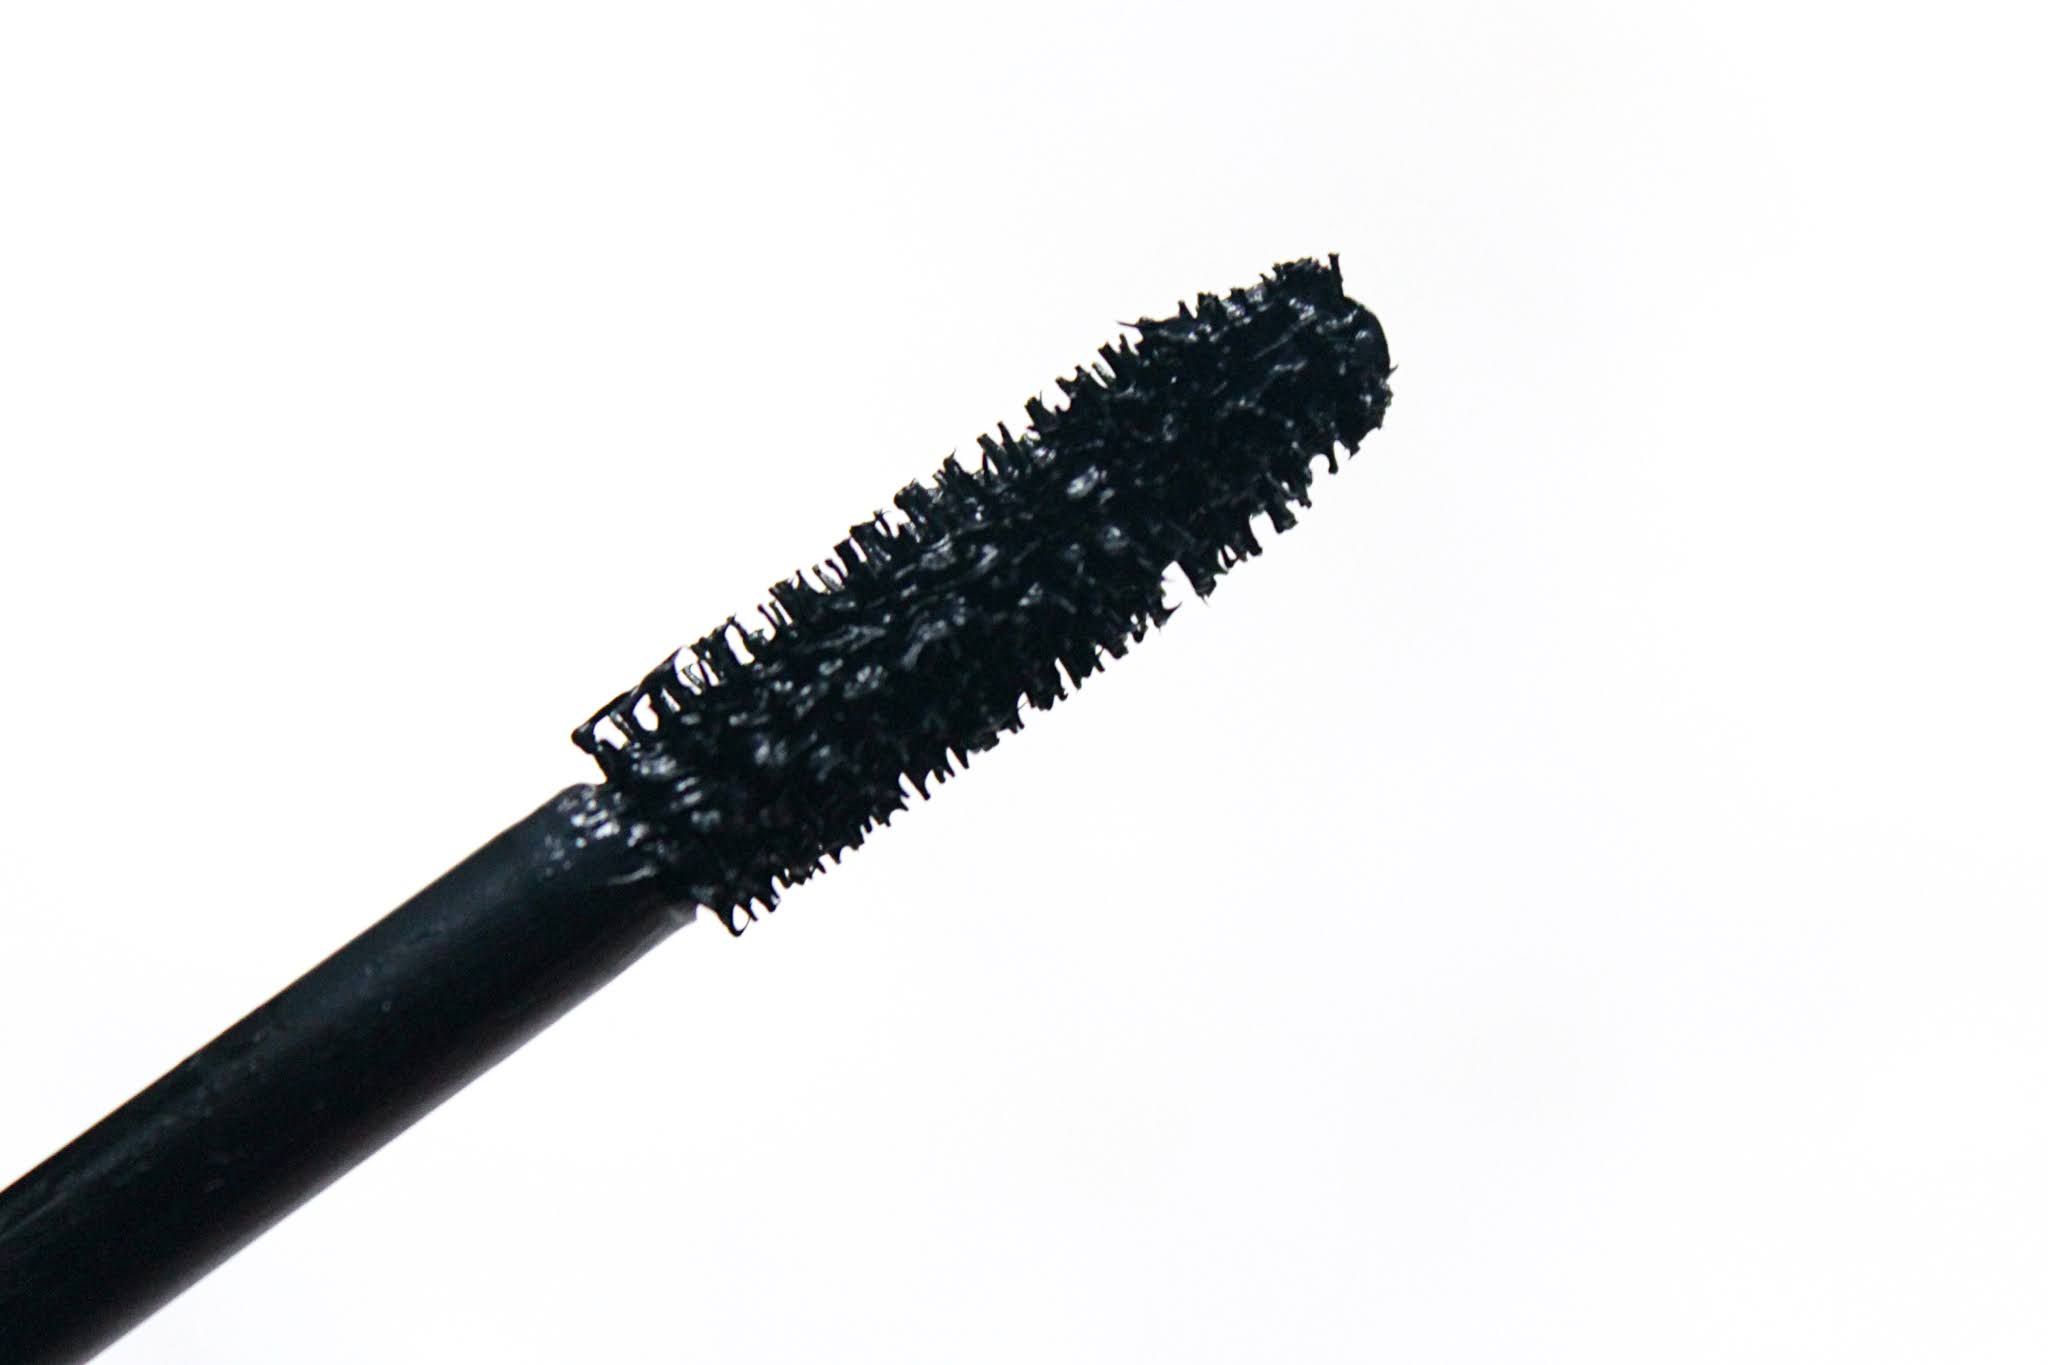 L'Oreal Air Volume Mega Mascara Review